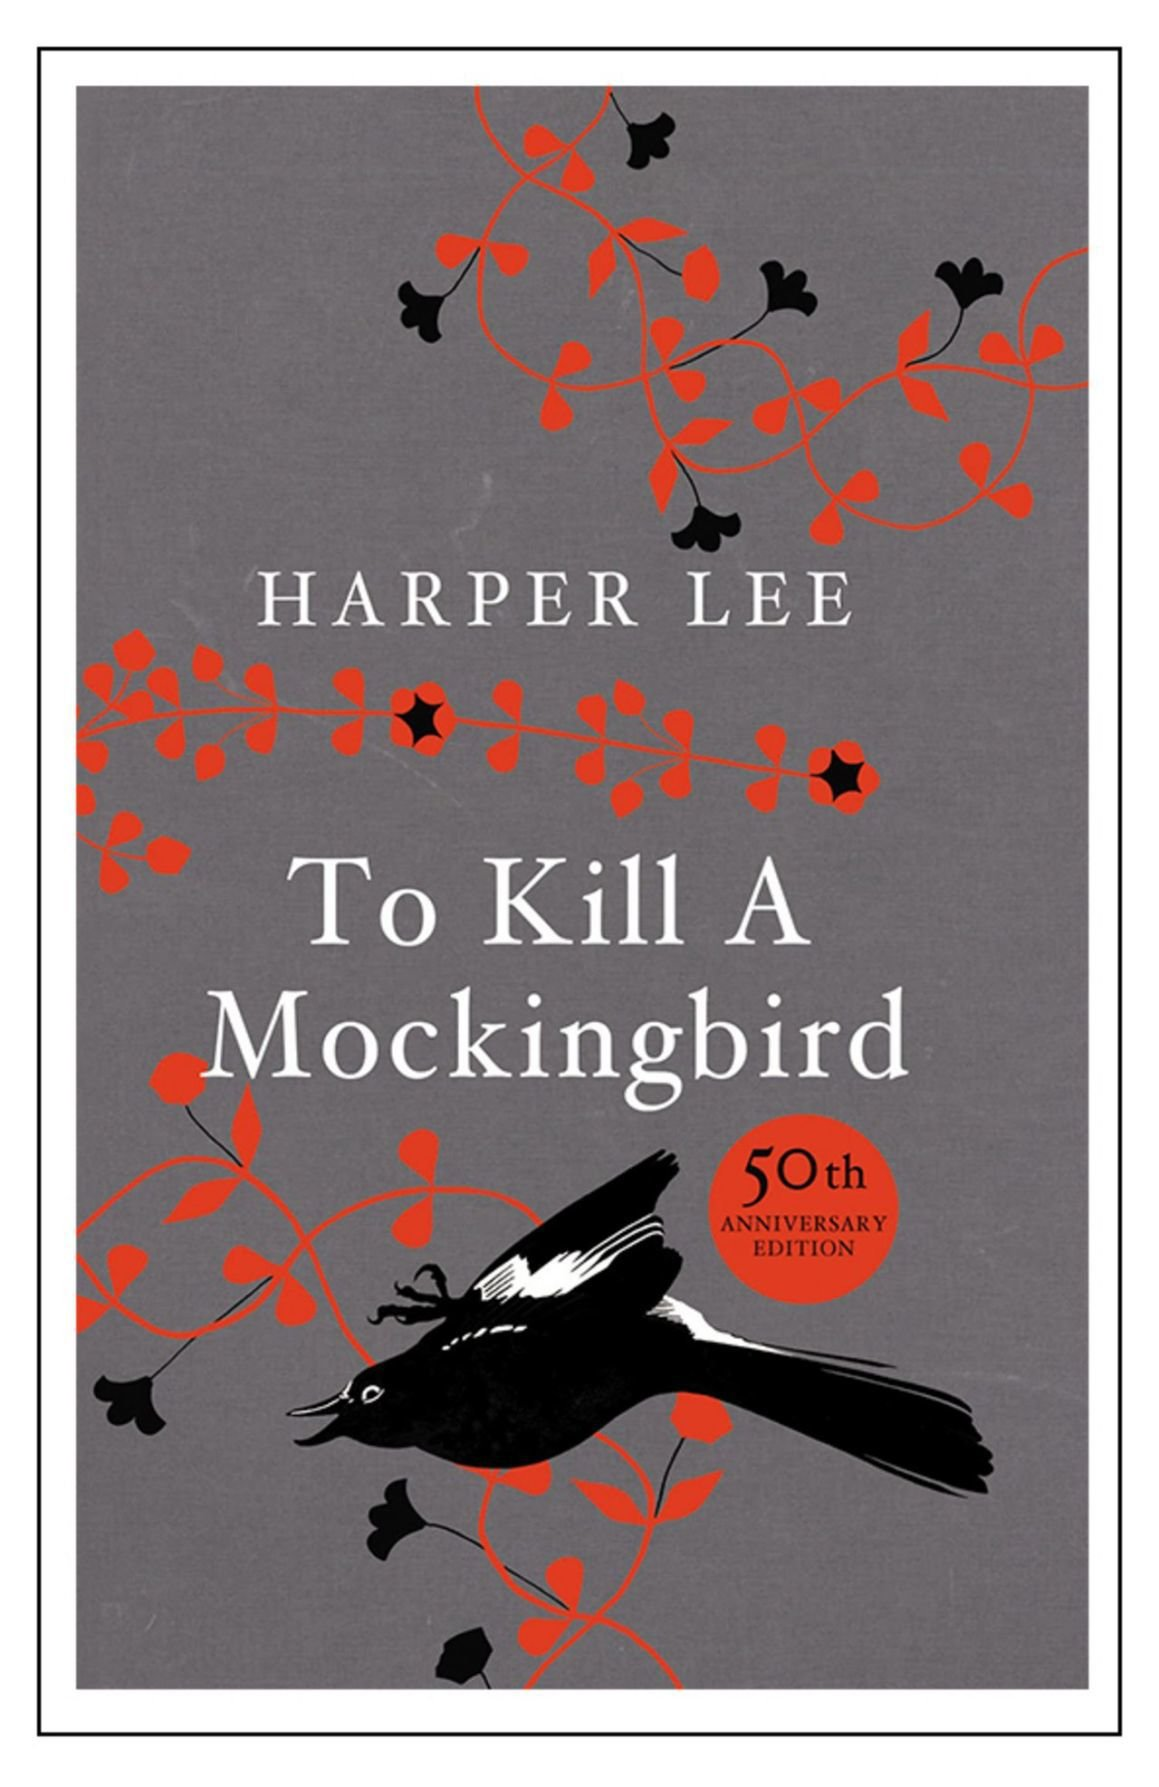 essay to kill a mockingbird maturity [in the following essay, chura discusses the representation of race and justice in to kill a mockingbird in the historical context of the civil rights movement of the 1950s.